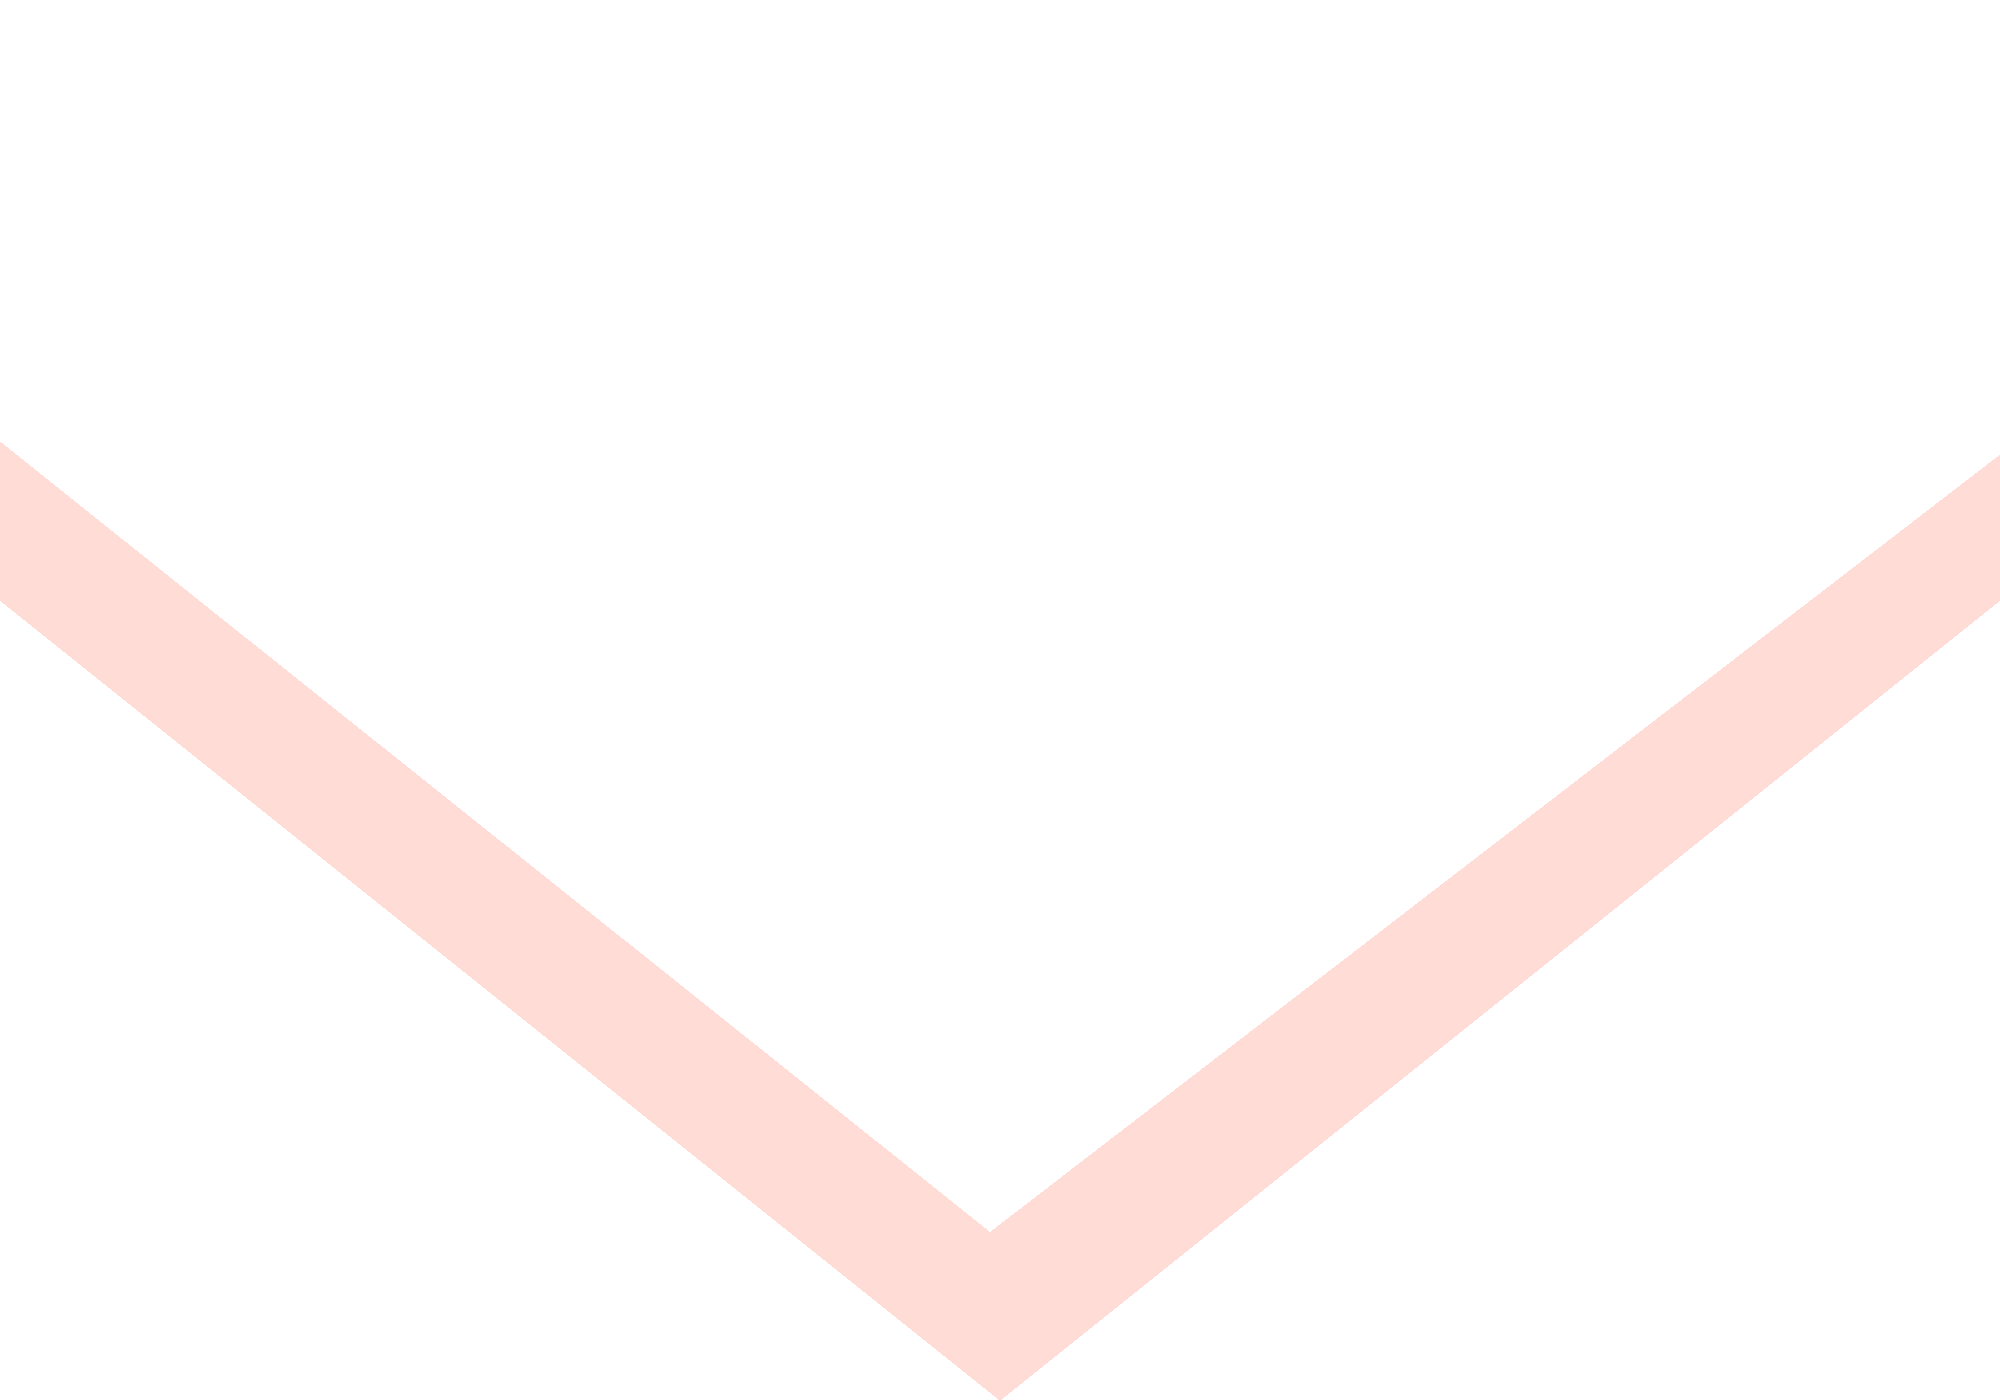 chevron red.png